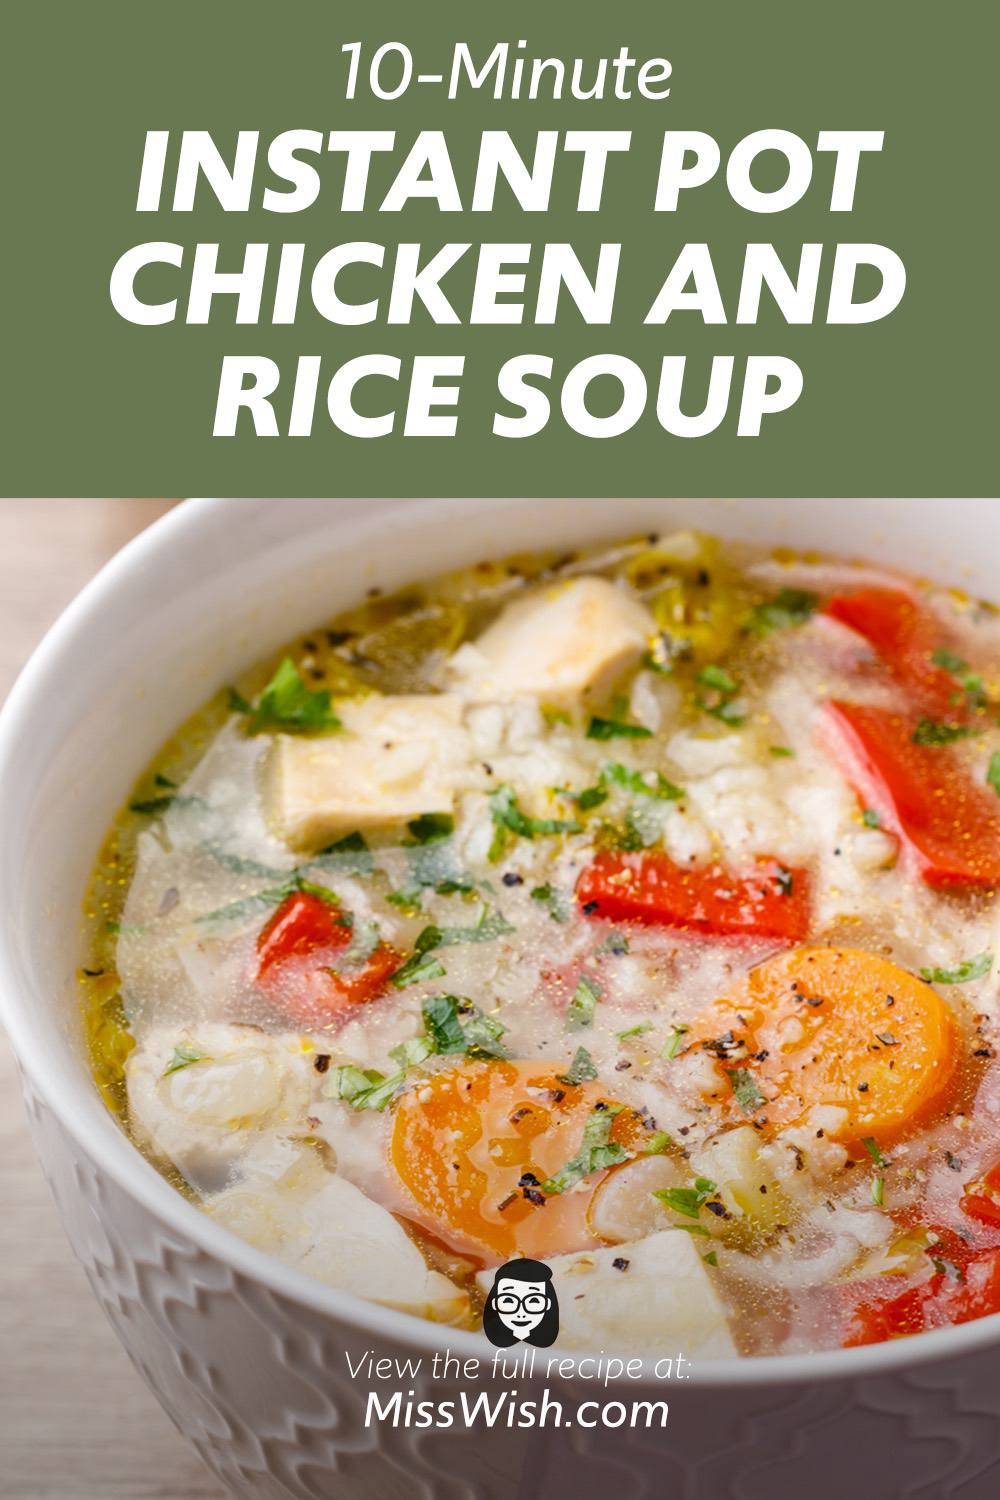 10-Minute Instant Pot Chicken and Rice Soup